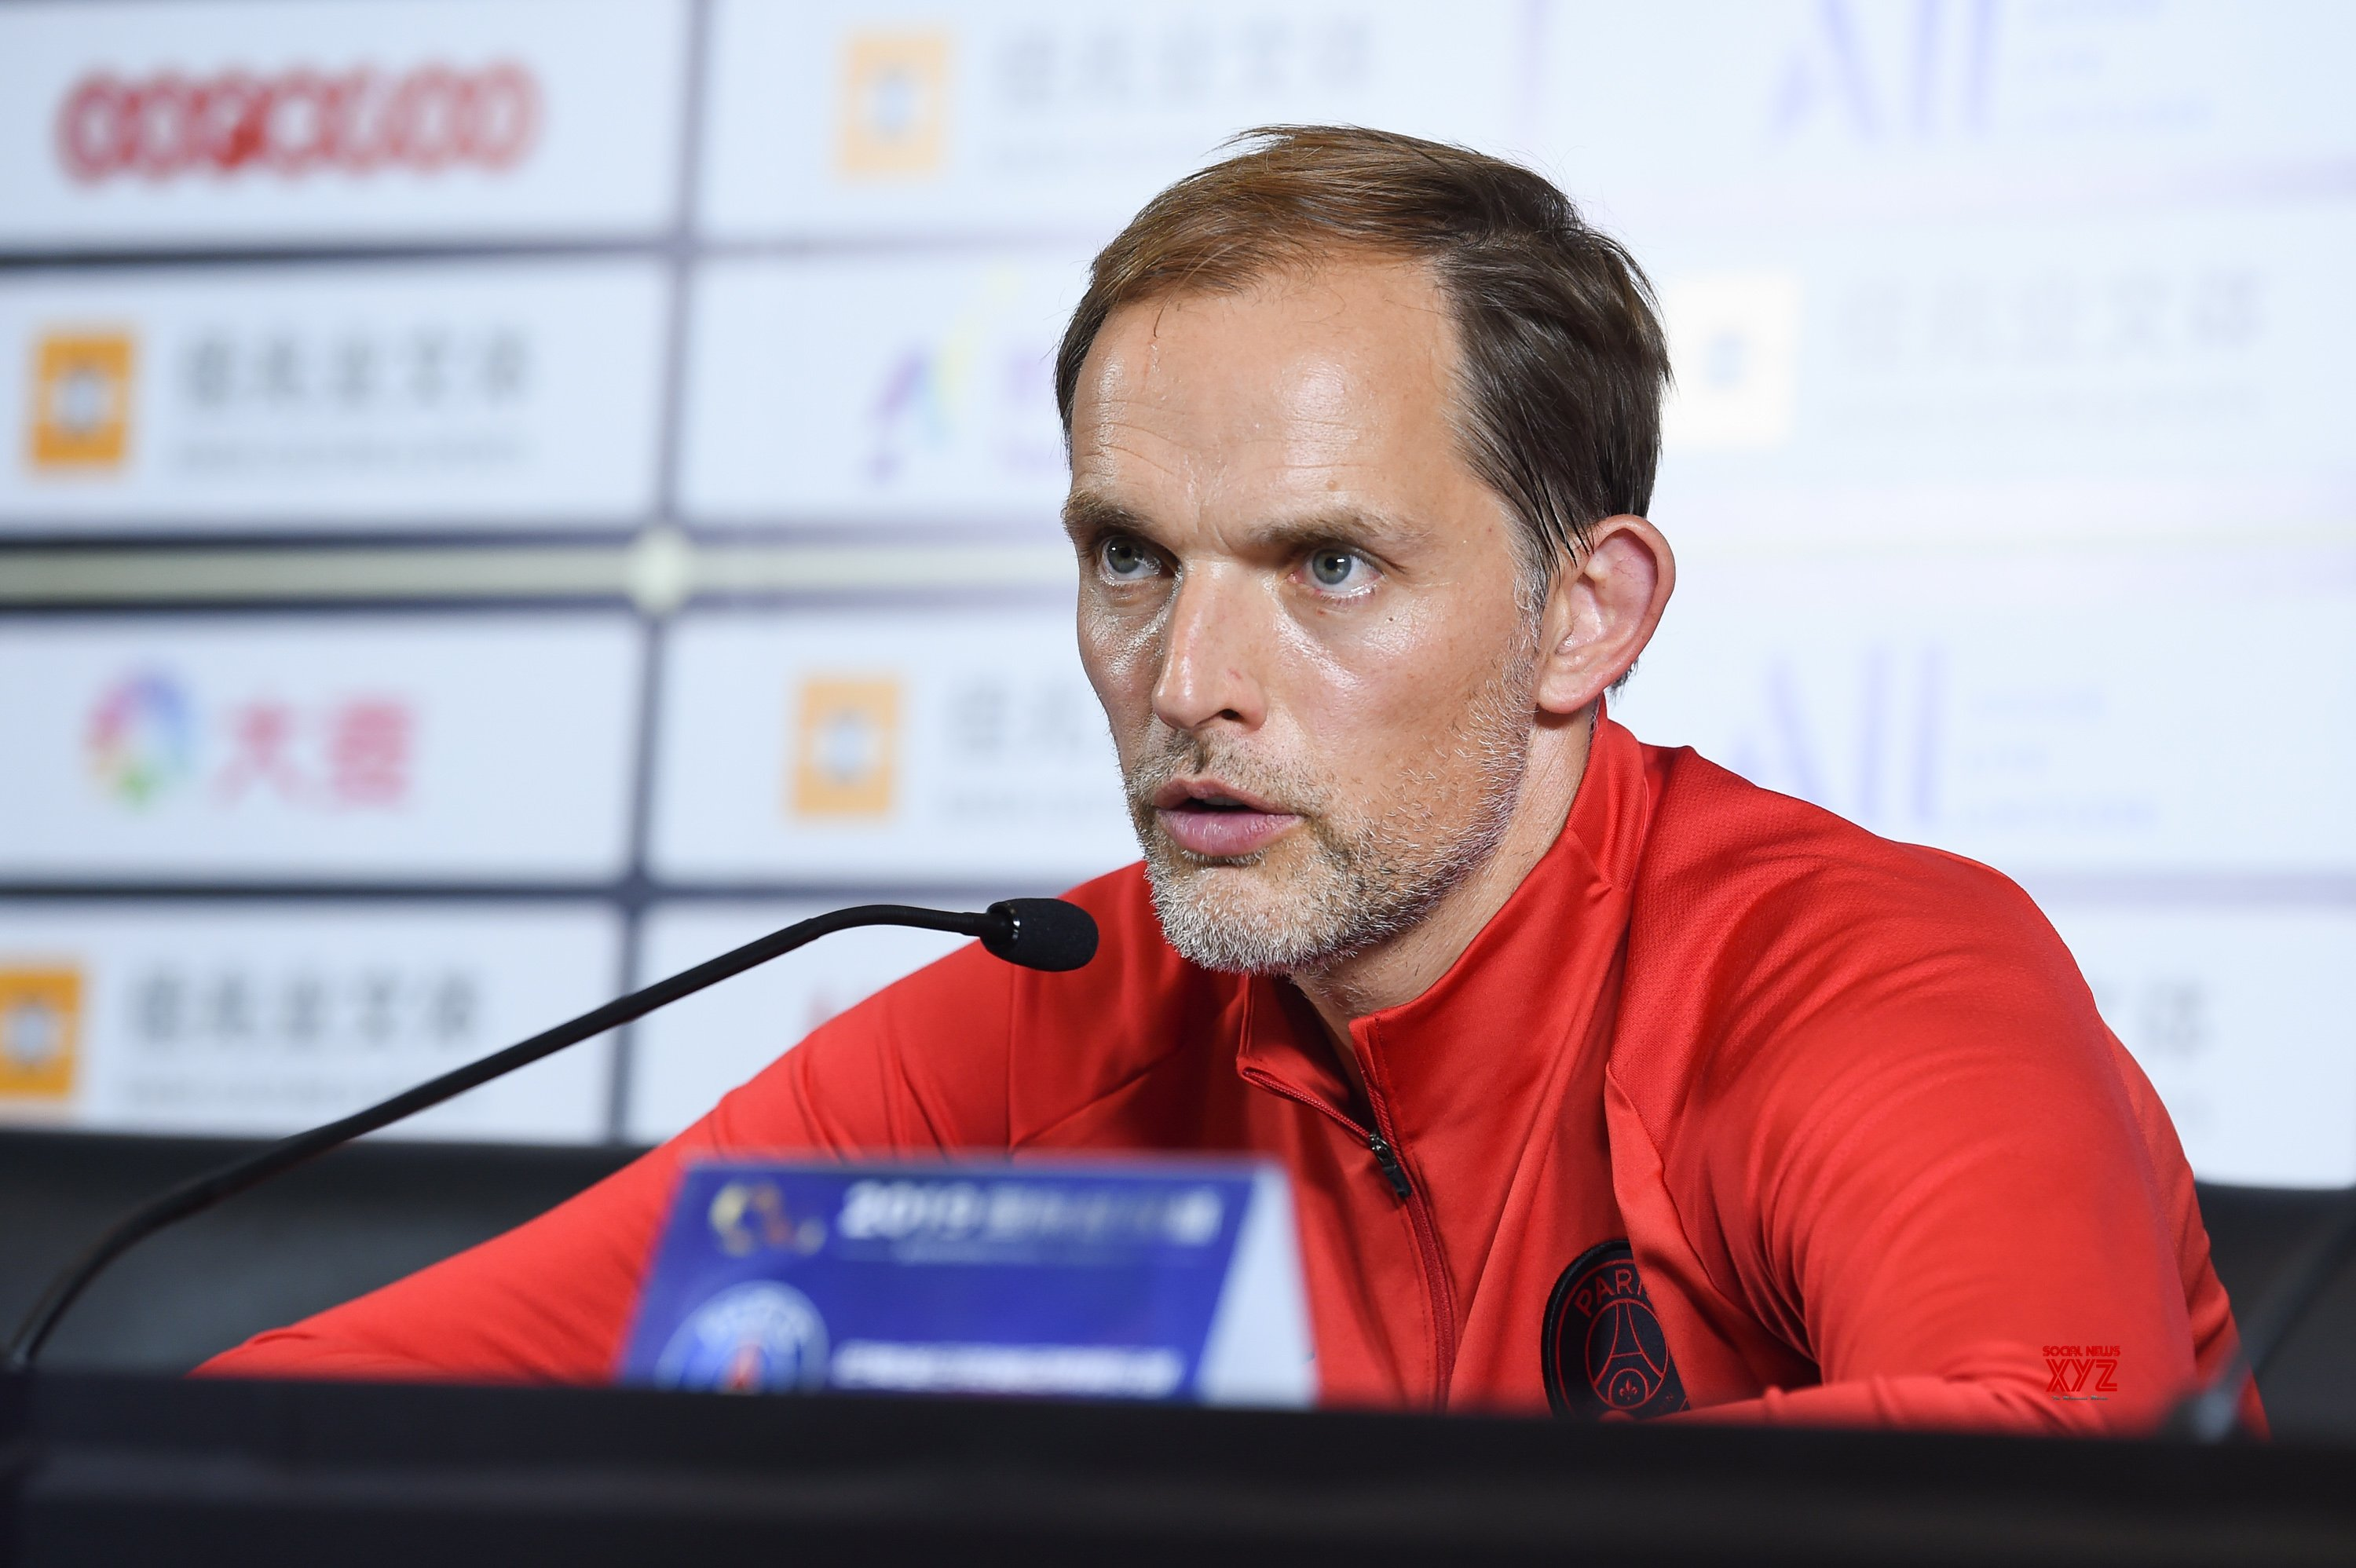 Tuchel wants Chelsea to go for the kill against Real